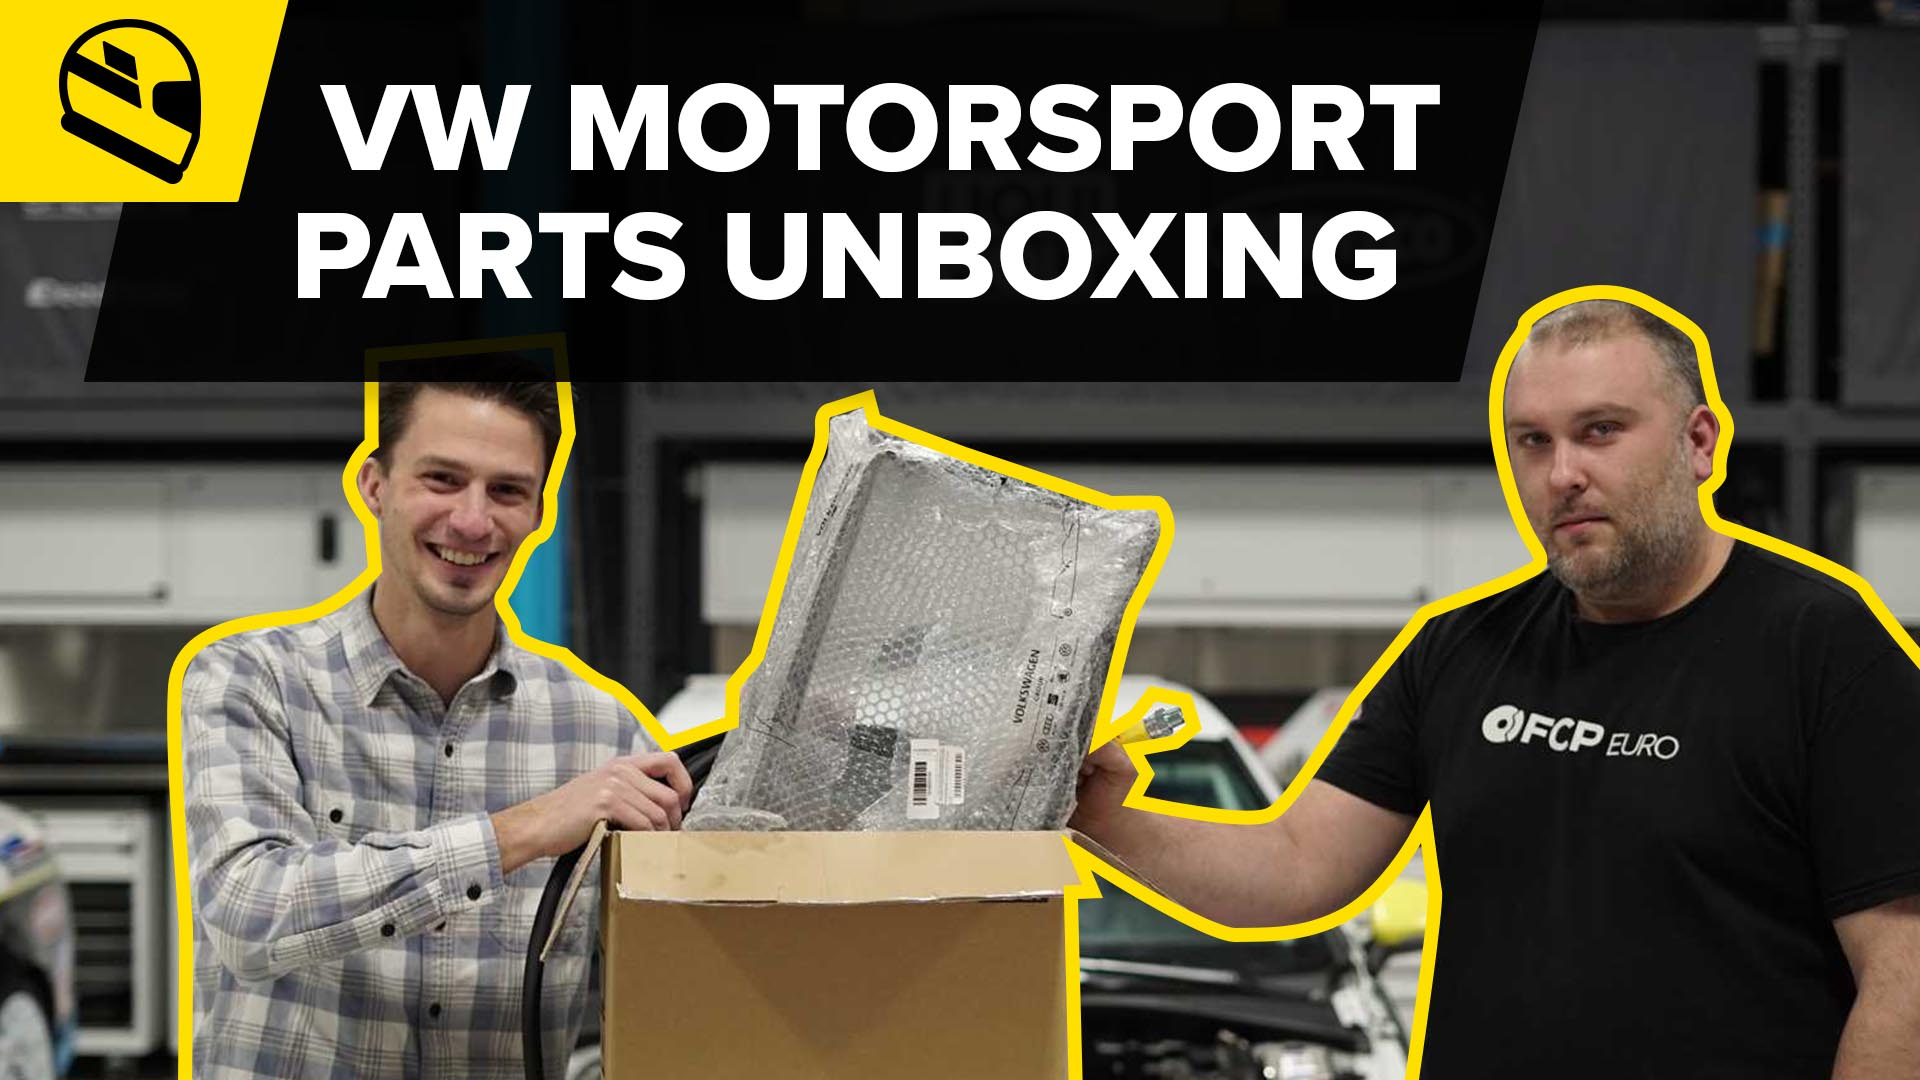 Motorsport Mondays - Volkswagen Motorsport Parts Unboxing